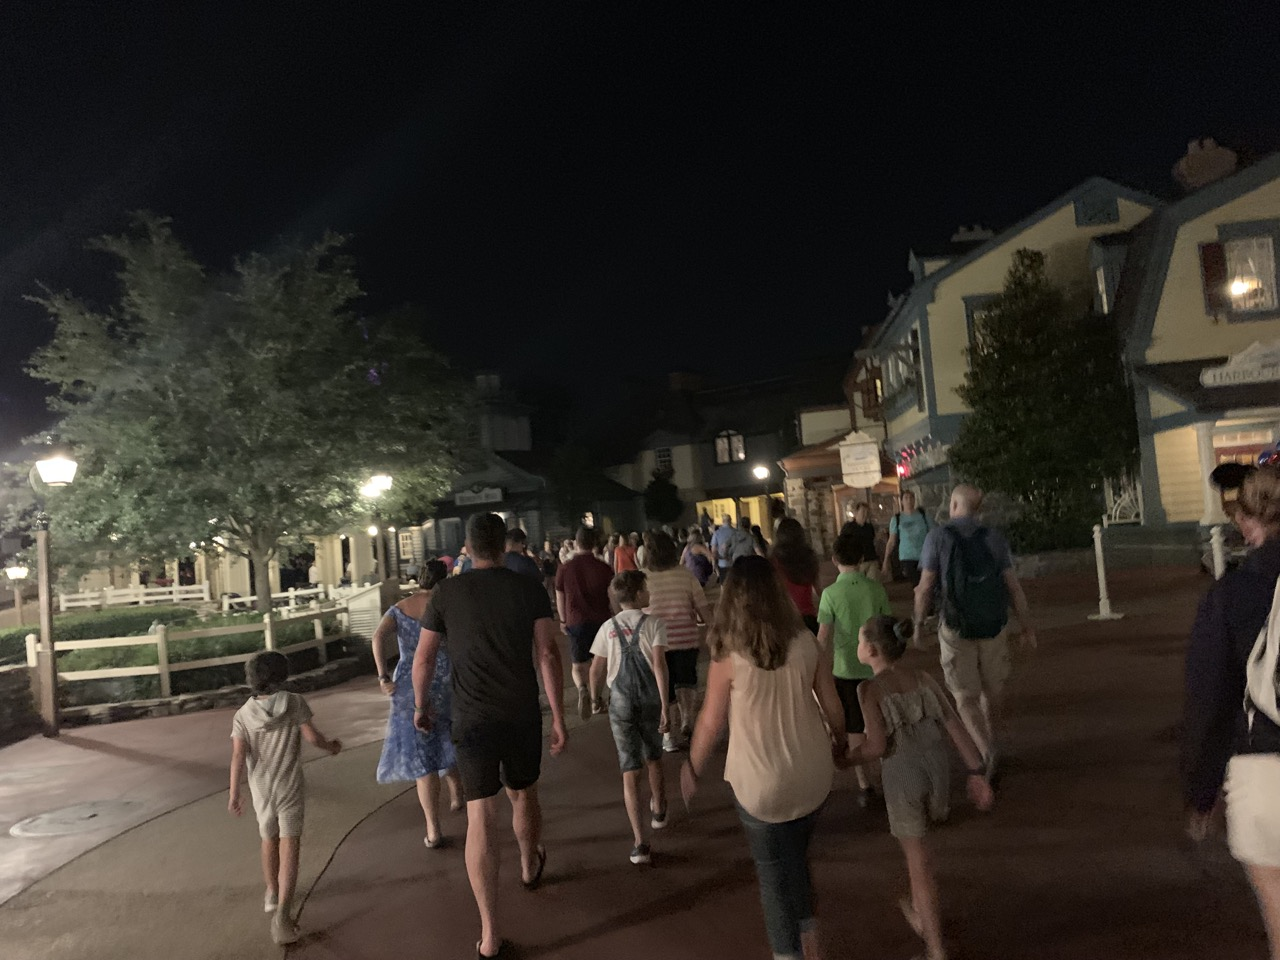 disney world trip report early summer 2019 day five 66 emh 1.jpeg